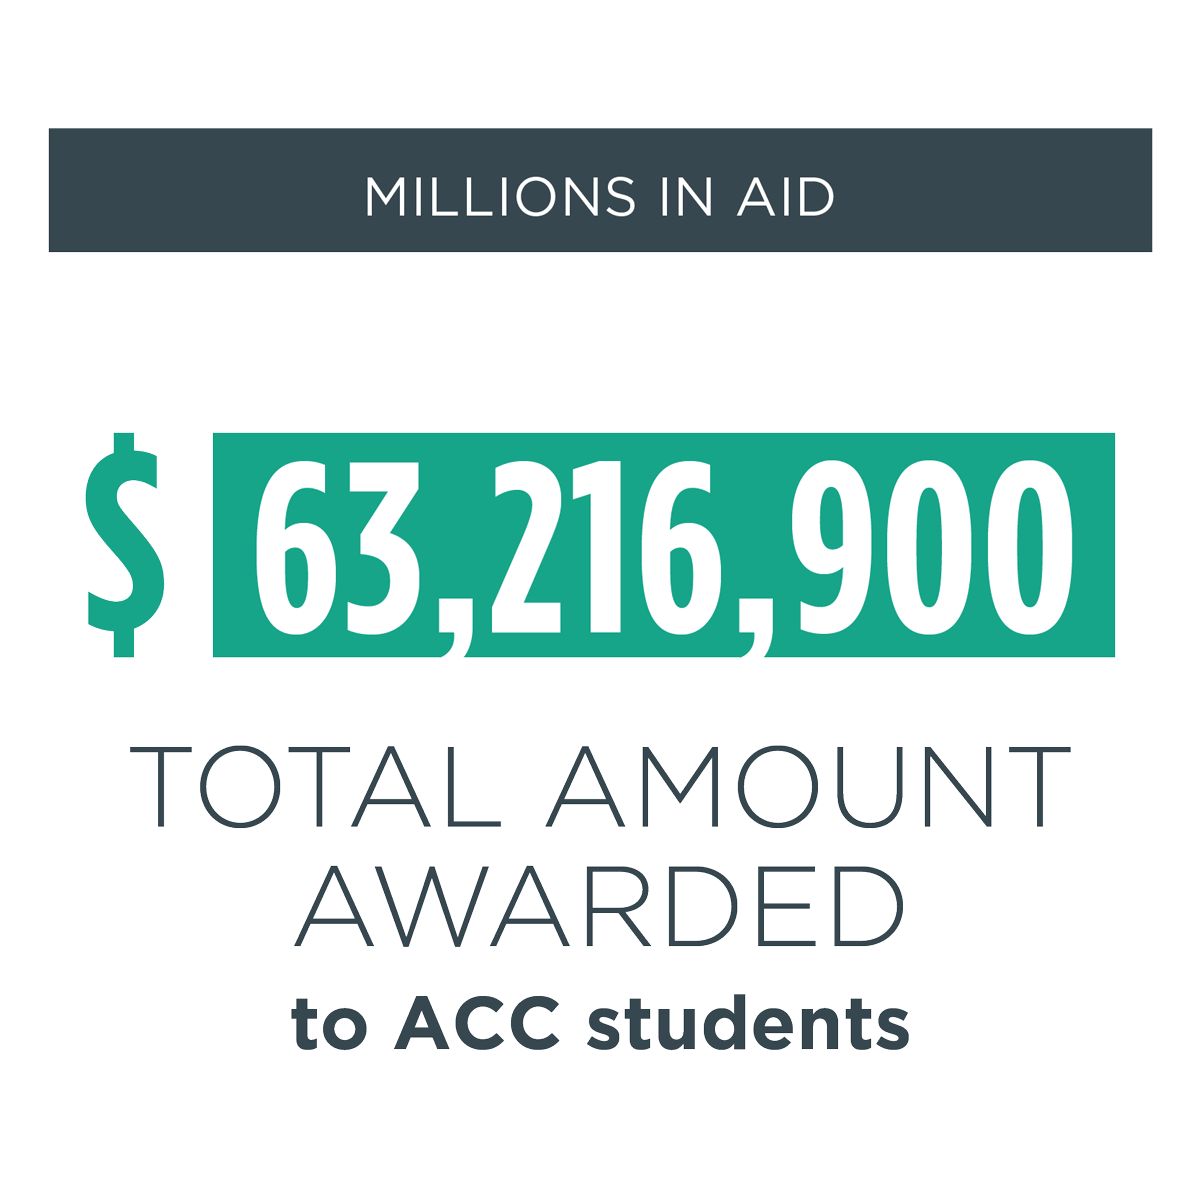 millions in aid -- $63,216,900 total amount of financial aid awarded to ACC students